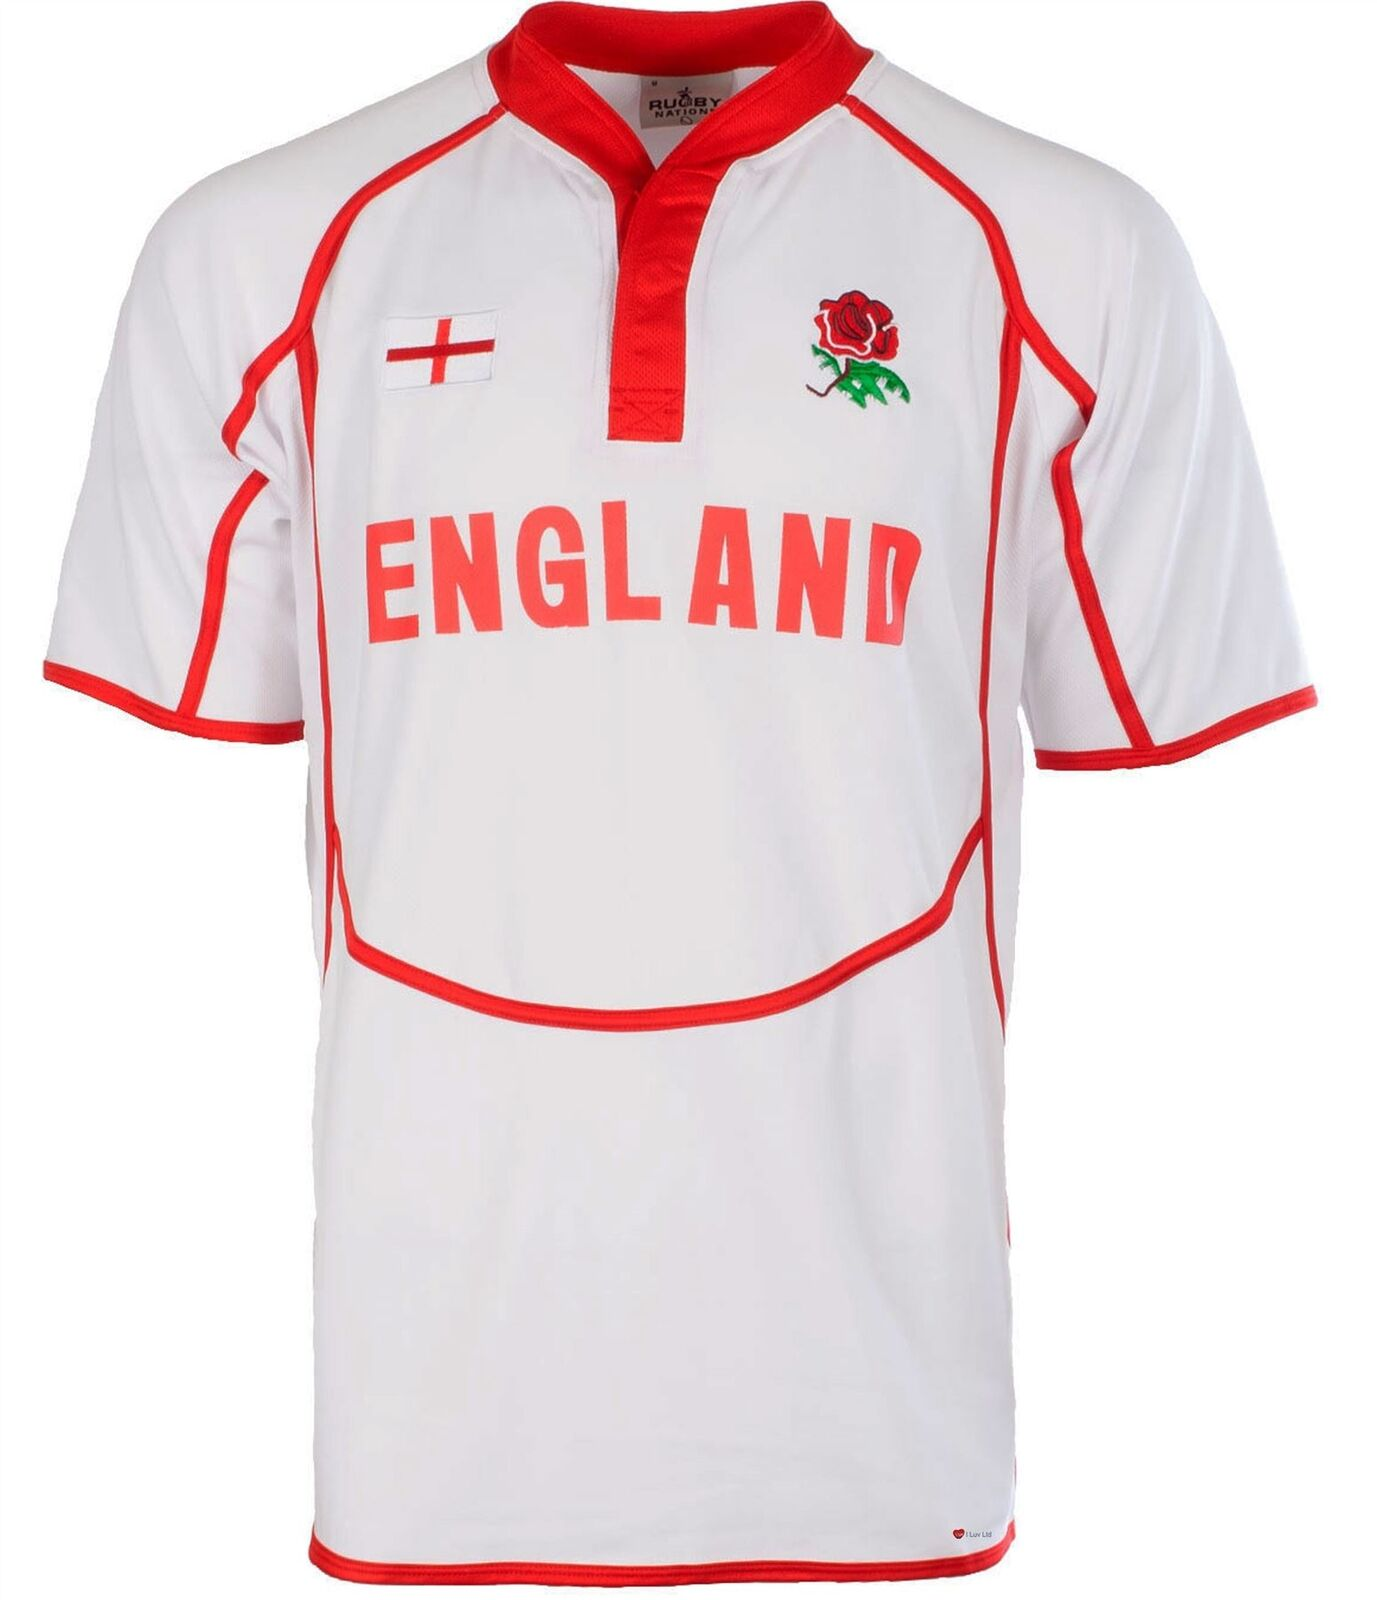 7c6594827934 Cooldry Style Rugby Shirt In Colours Size Small England Gents ...